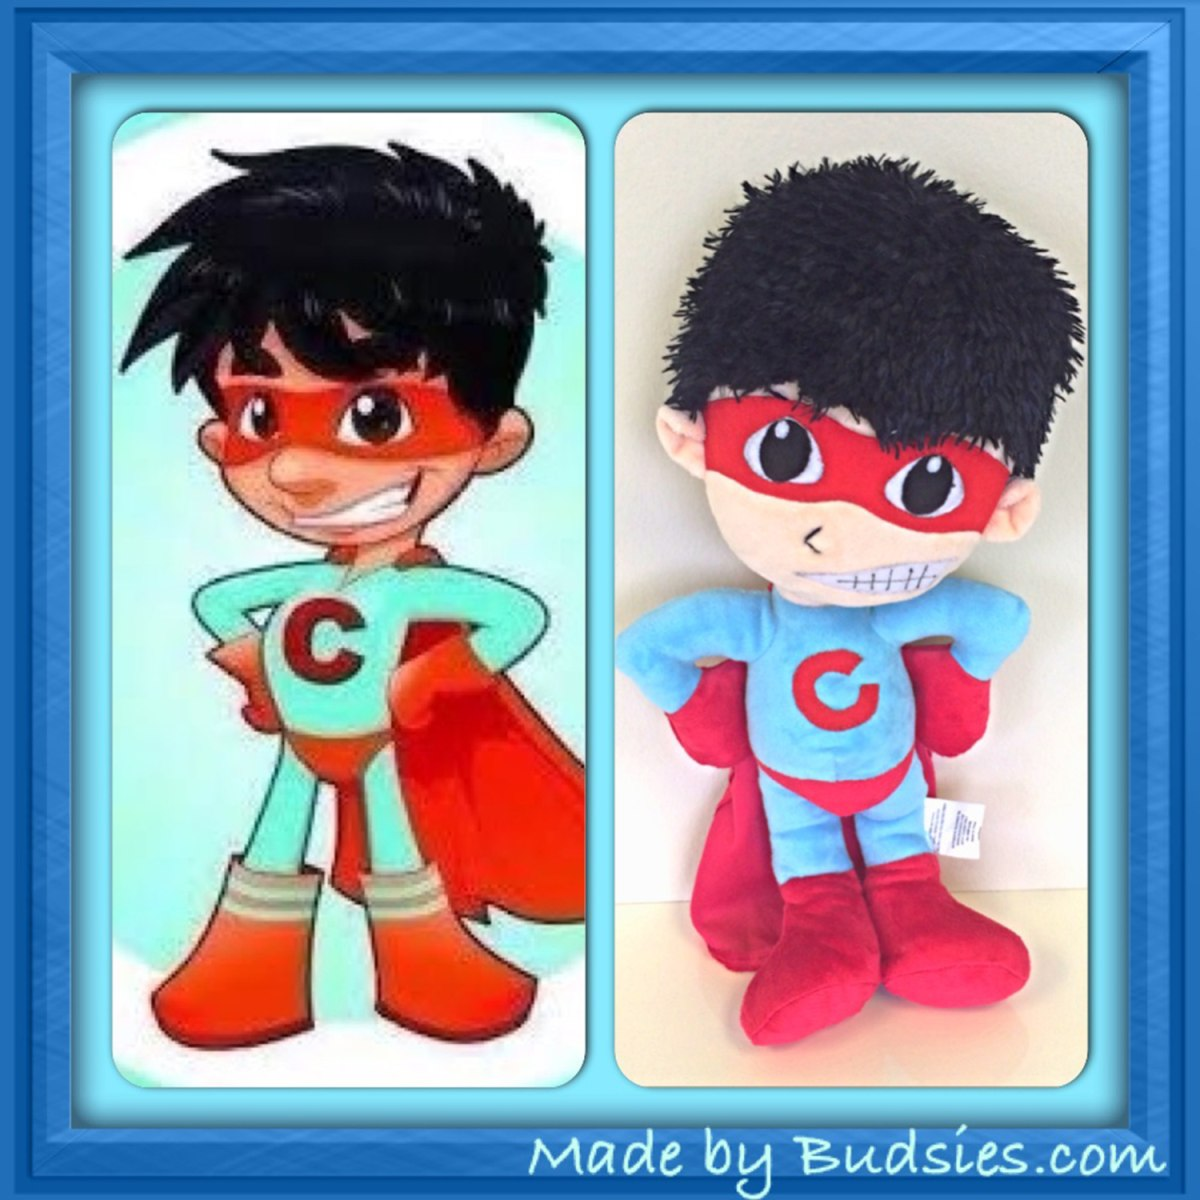 Kids Original Sketches Become Cherished Plush Toys